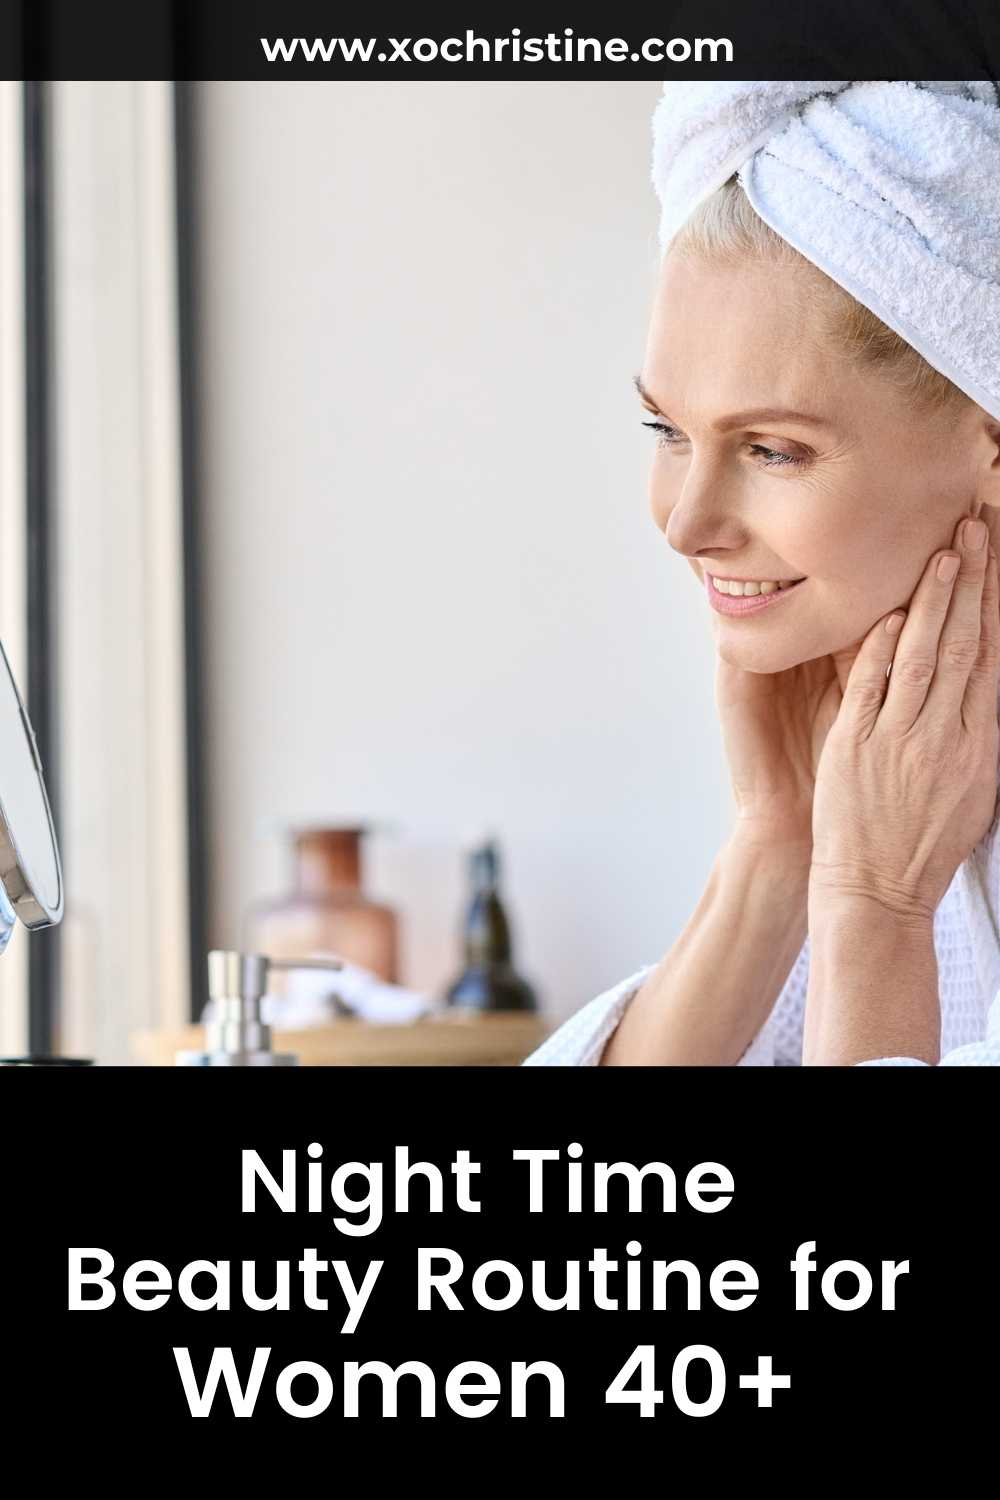 The best nighttime self-care beauty routine (for women 40+)